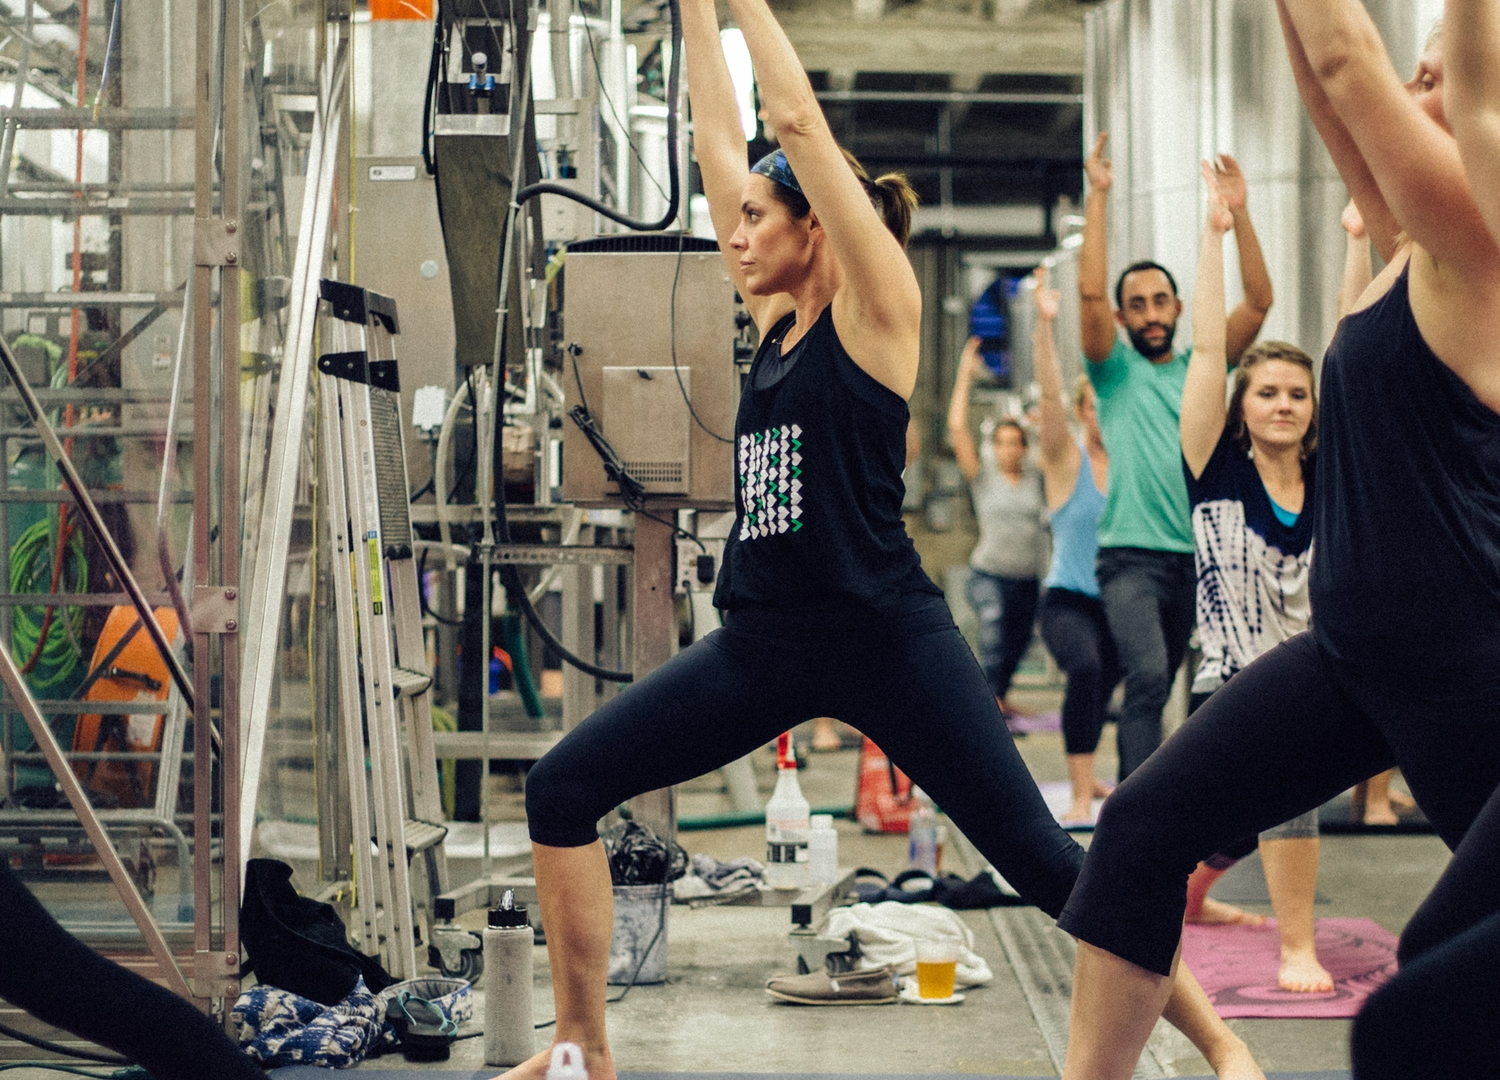 Join us at Tin Roof Brewing Company on Wednesday from 6:00-7:00pm for a complimentary yoga class followed by a well-earned brew.